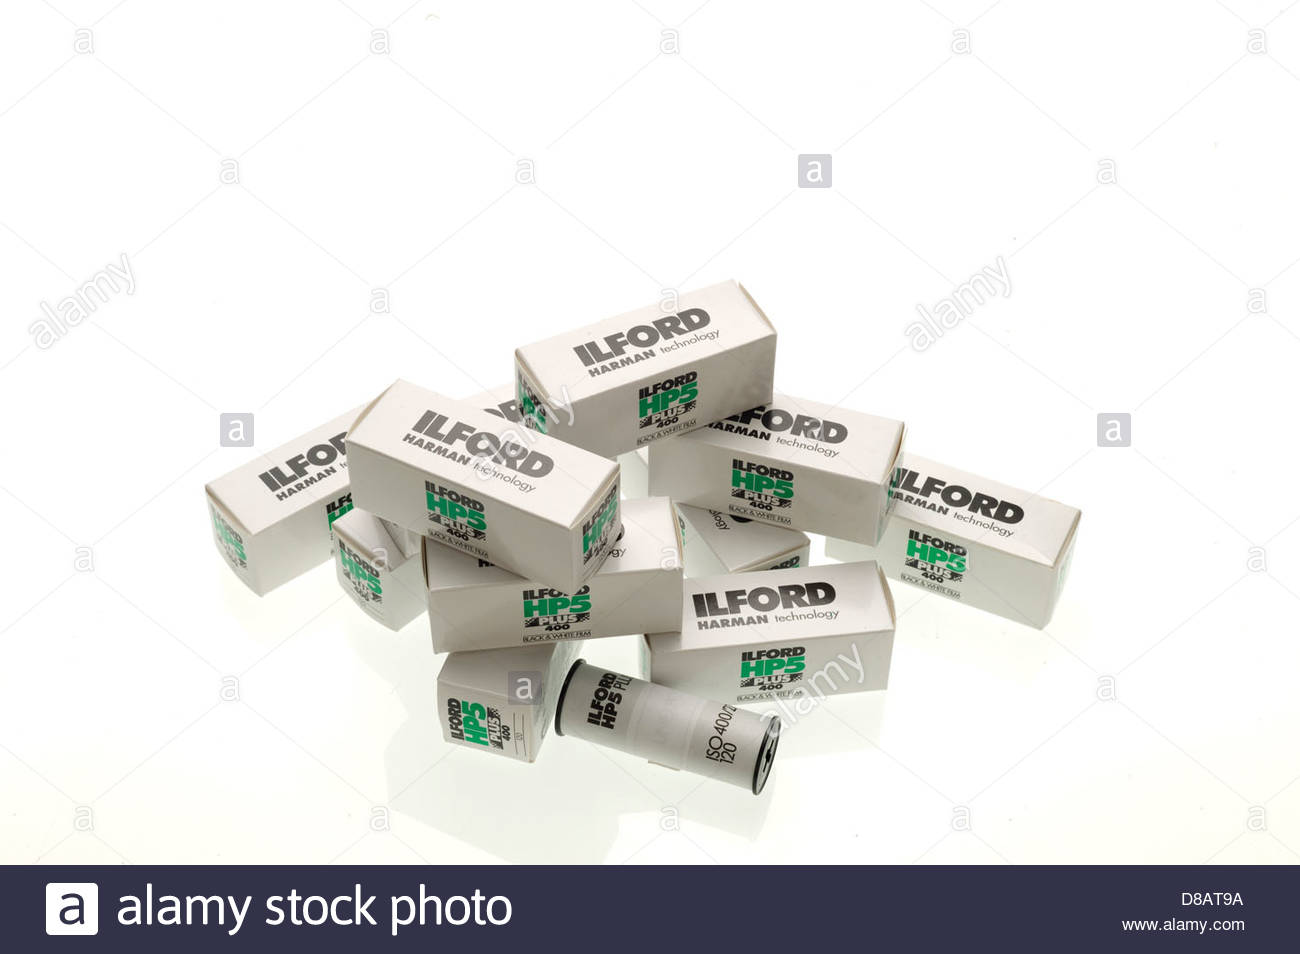 Rolls of Ilford film Stock Photo